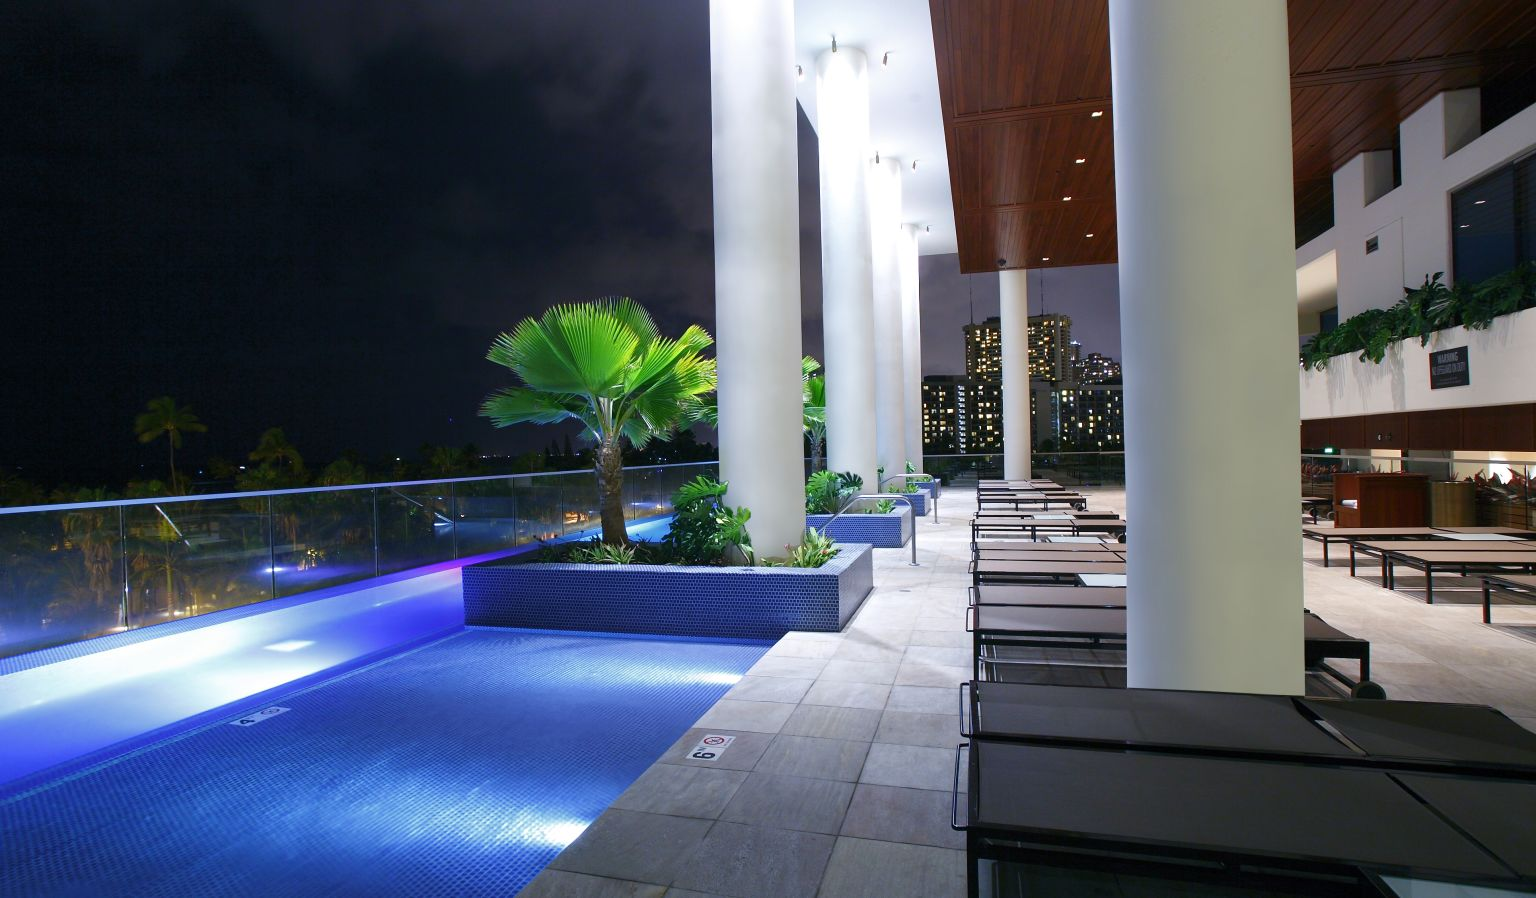 Outdoor Pool & Lounge Chairs at Night